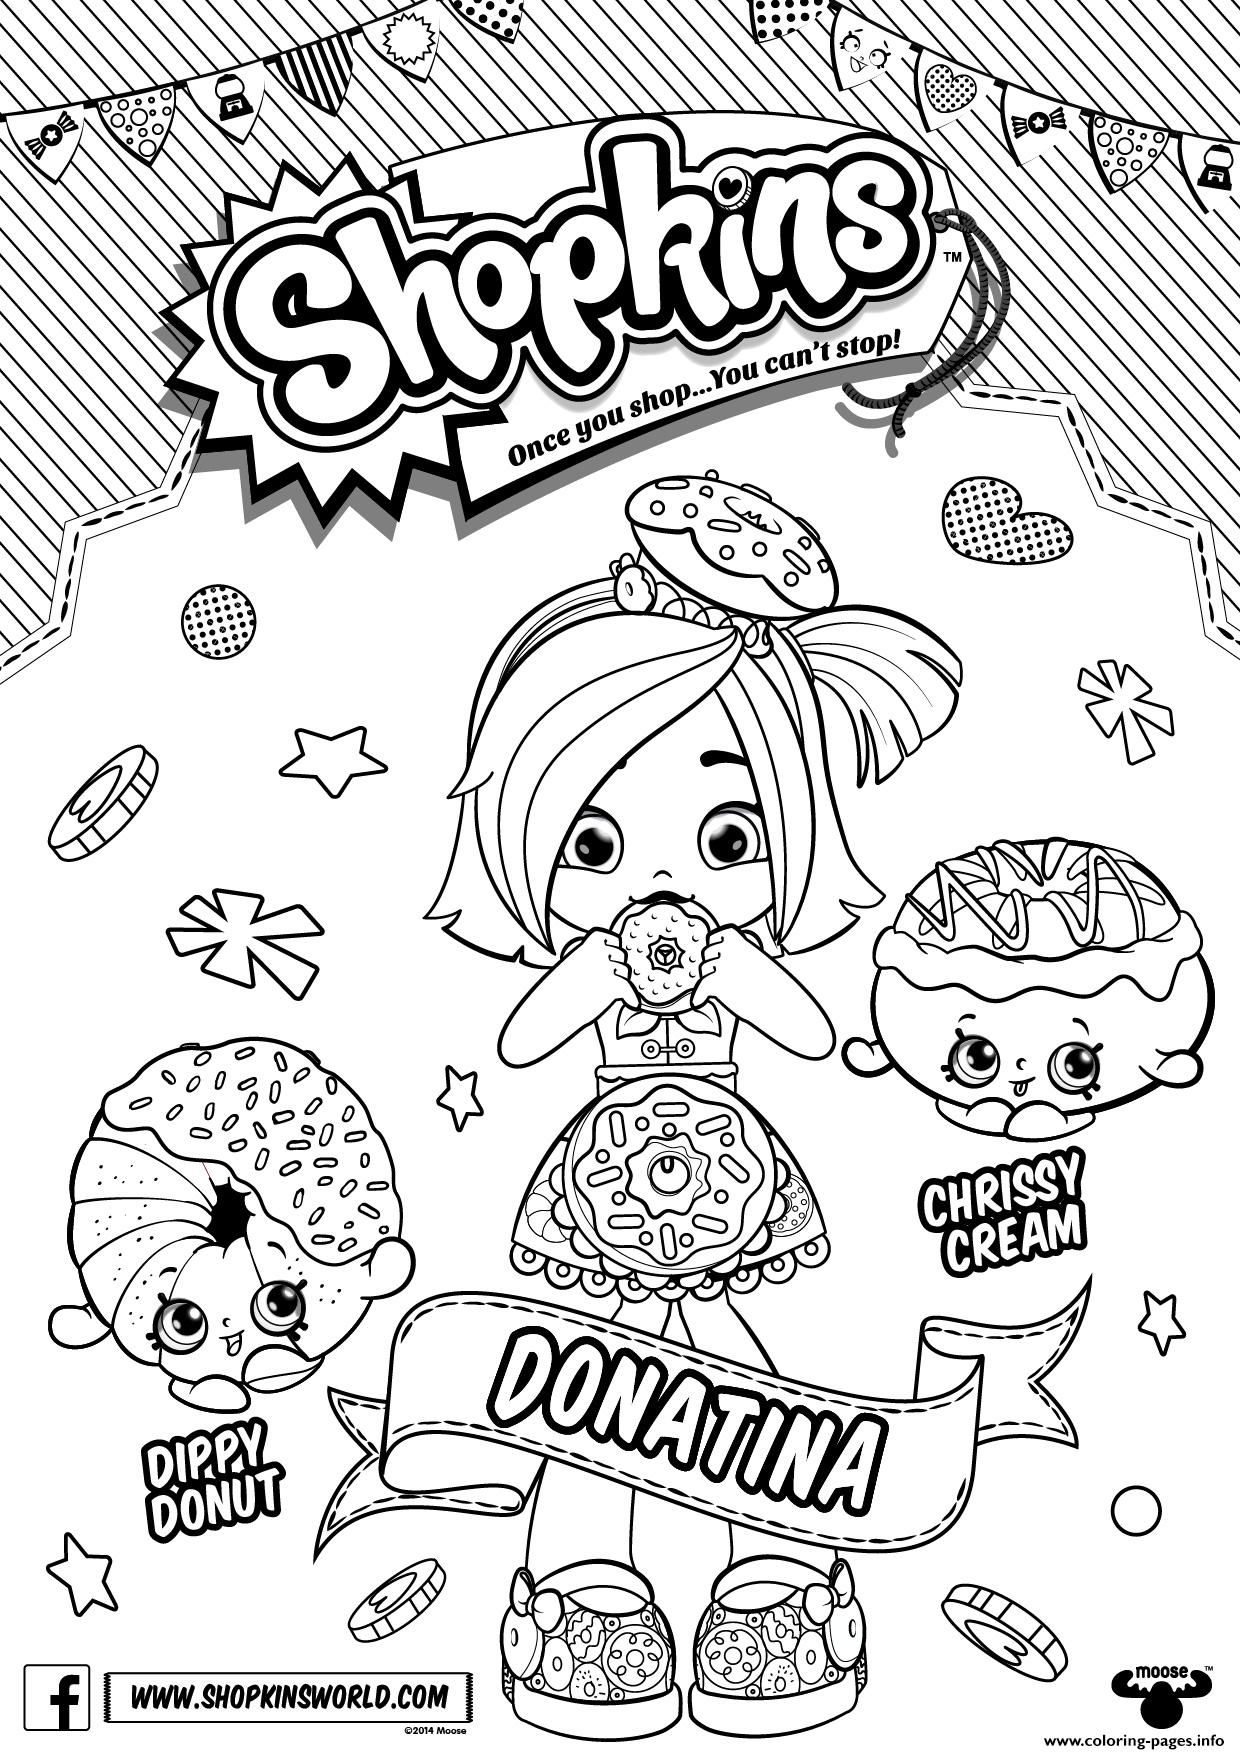 Print Shopkins Season 6 Doll Chef Club Donatina Coloring